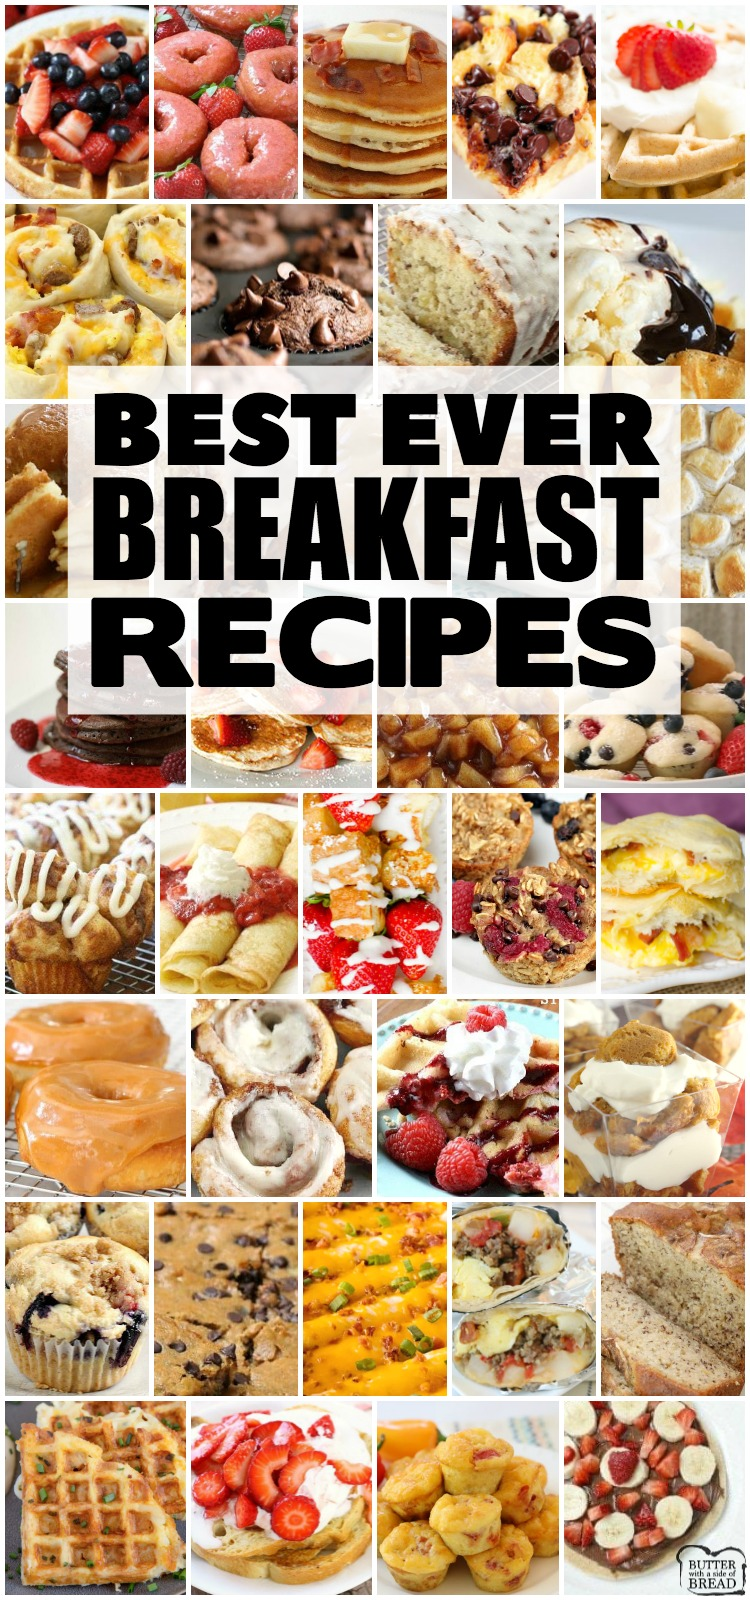 Best Breakfast ideas for anyone who loves breakfast food! Wide variety of breakfast ideas - sweet, savory, breakfast for a crowd or breakfast for two!